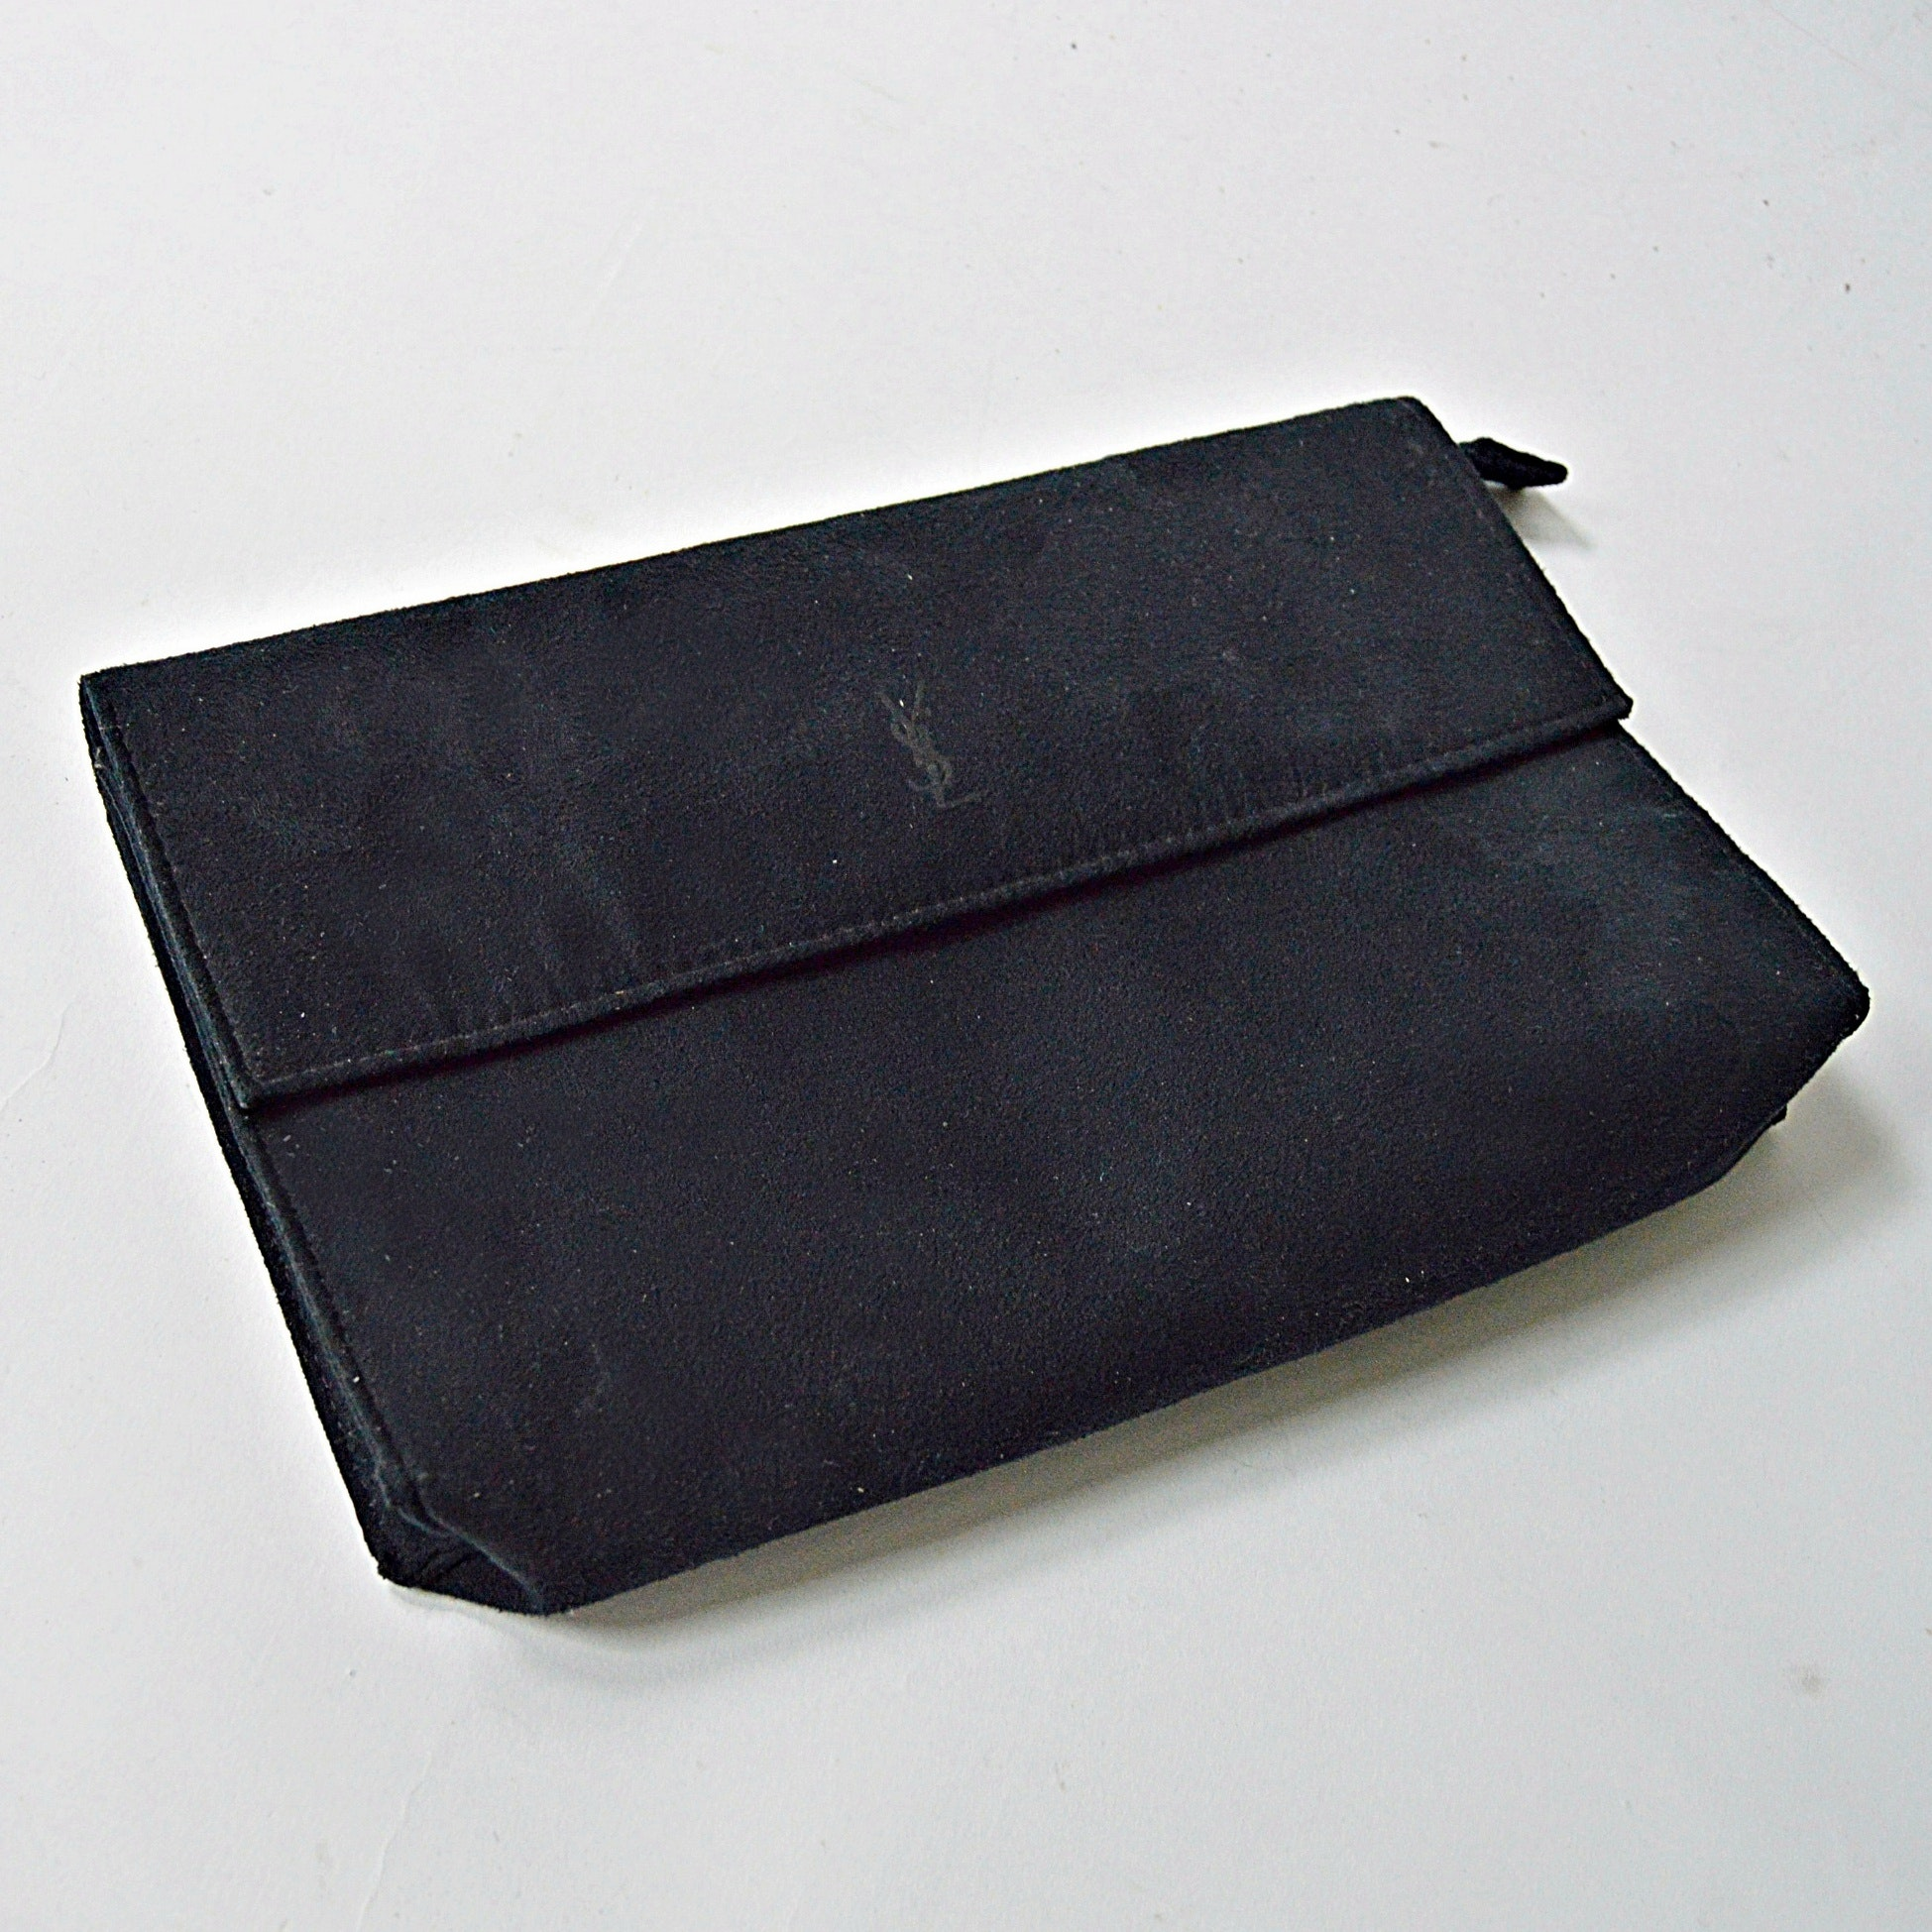 Yves Saint Laurent Suede Pouch